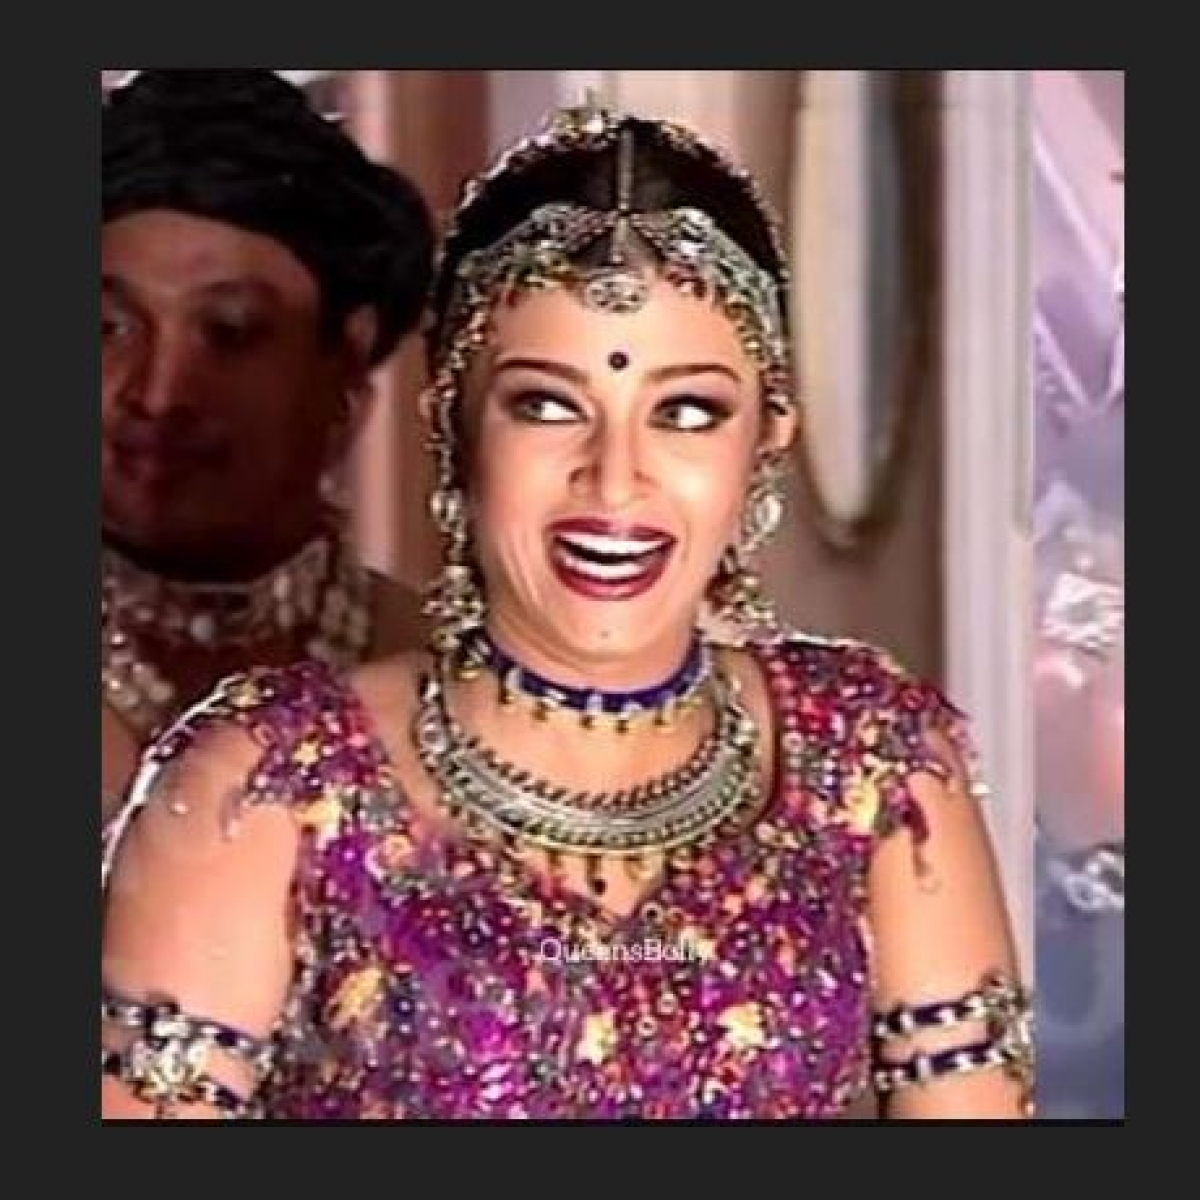 Watch: Aishwarya Rai Bachchan's 23-year-old dance clip from unreleased film goes viral